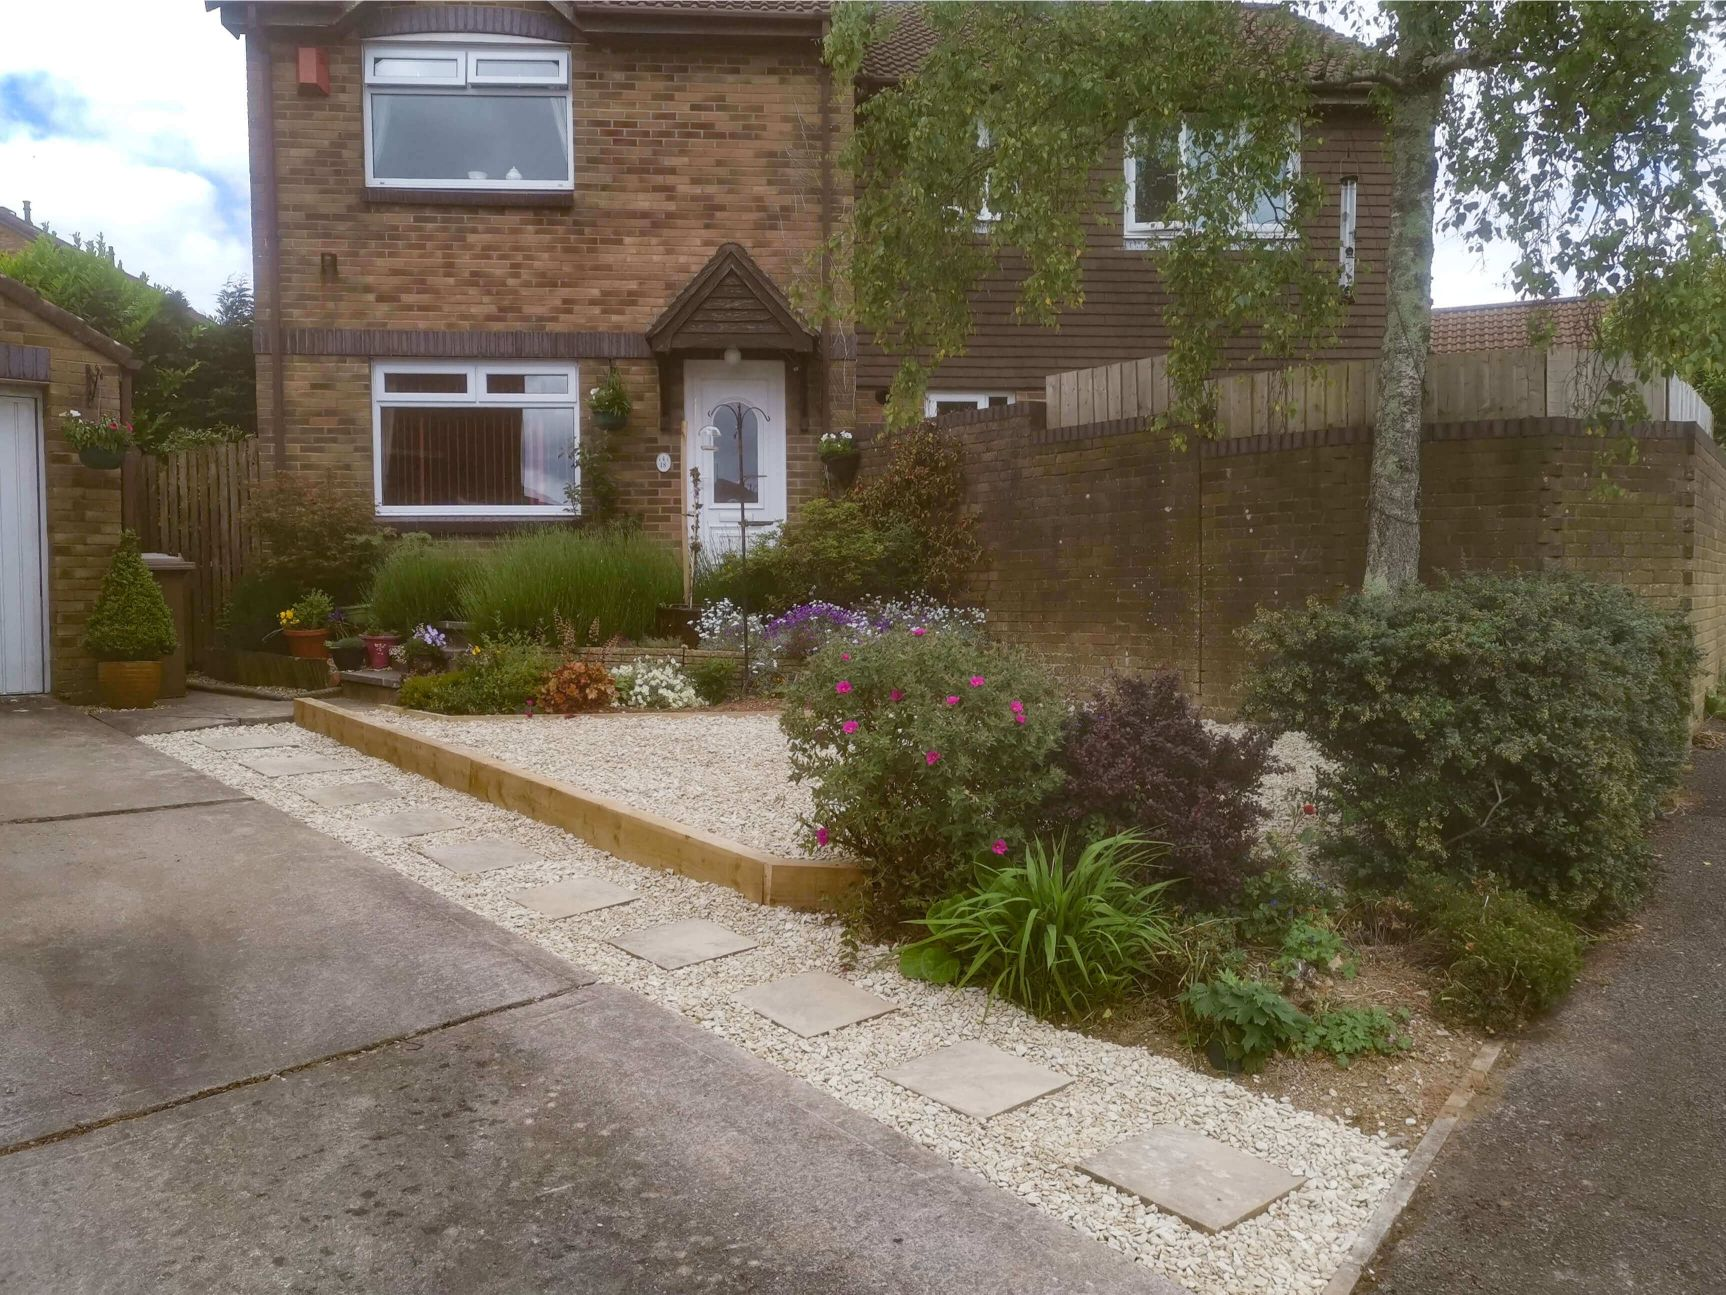 Planting Services - Front Garden with Plants - Jackson Garden Services